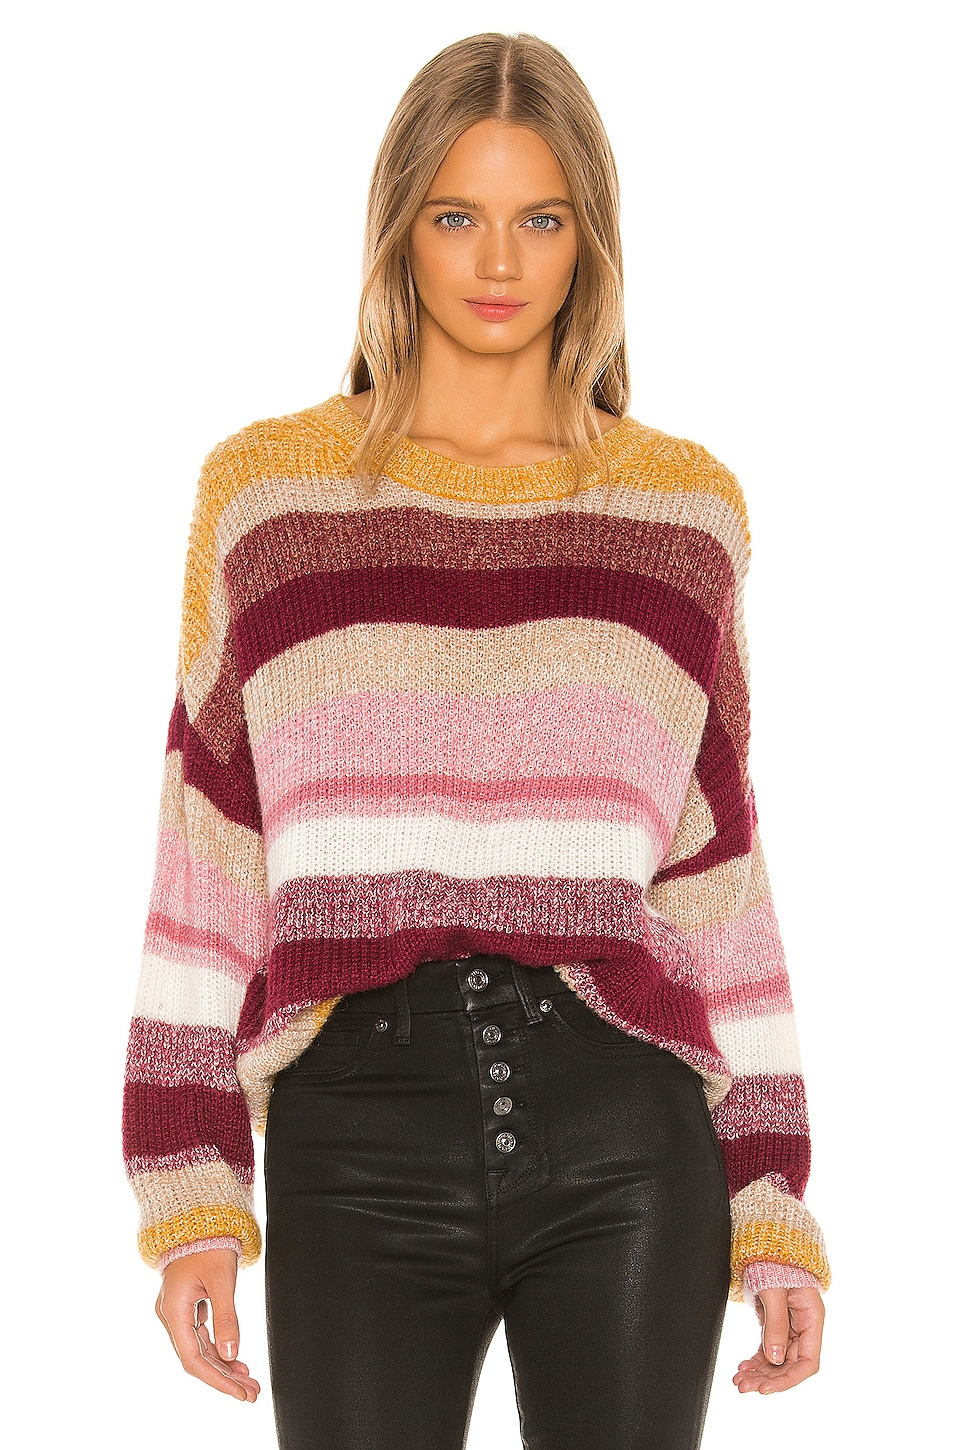 Sanctuary Blur The Lines Striped Sweater in Garnet Stripe